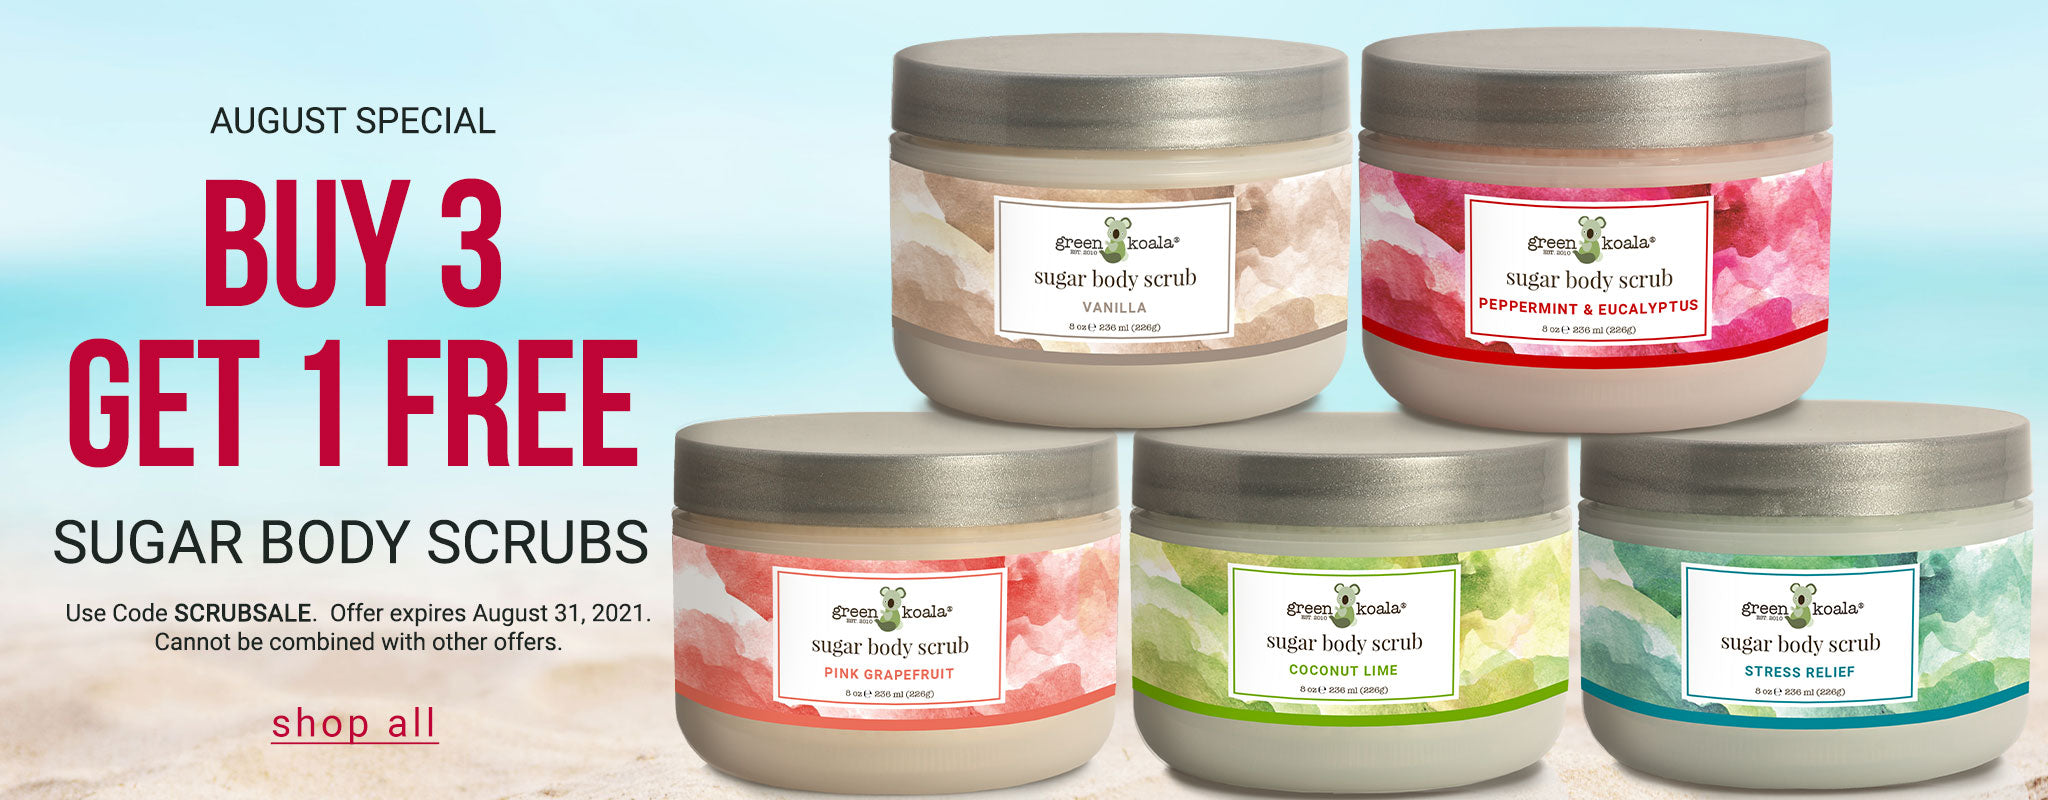 Special: Buy 3 Sugar Body Scrubs Get One Free. Cannot be combined with other offers. Valid August 1-31, 2021. Use Code: SCRUBSALE.